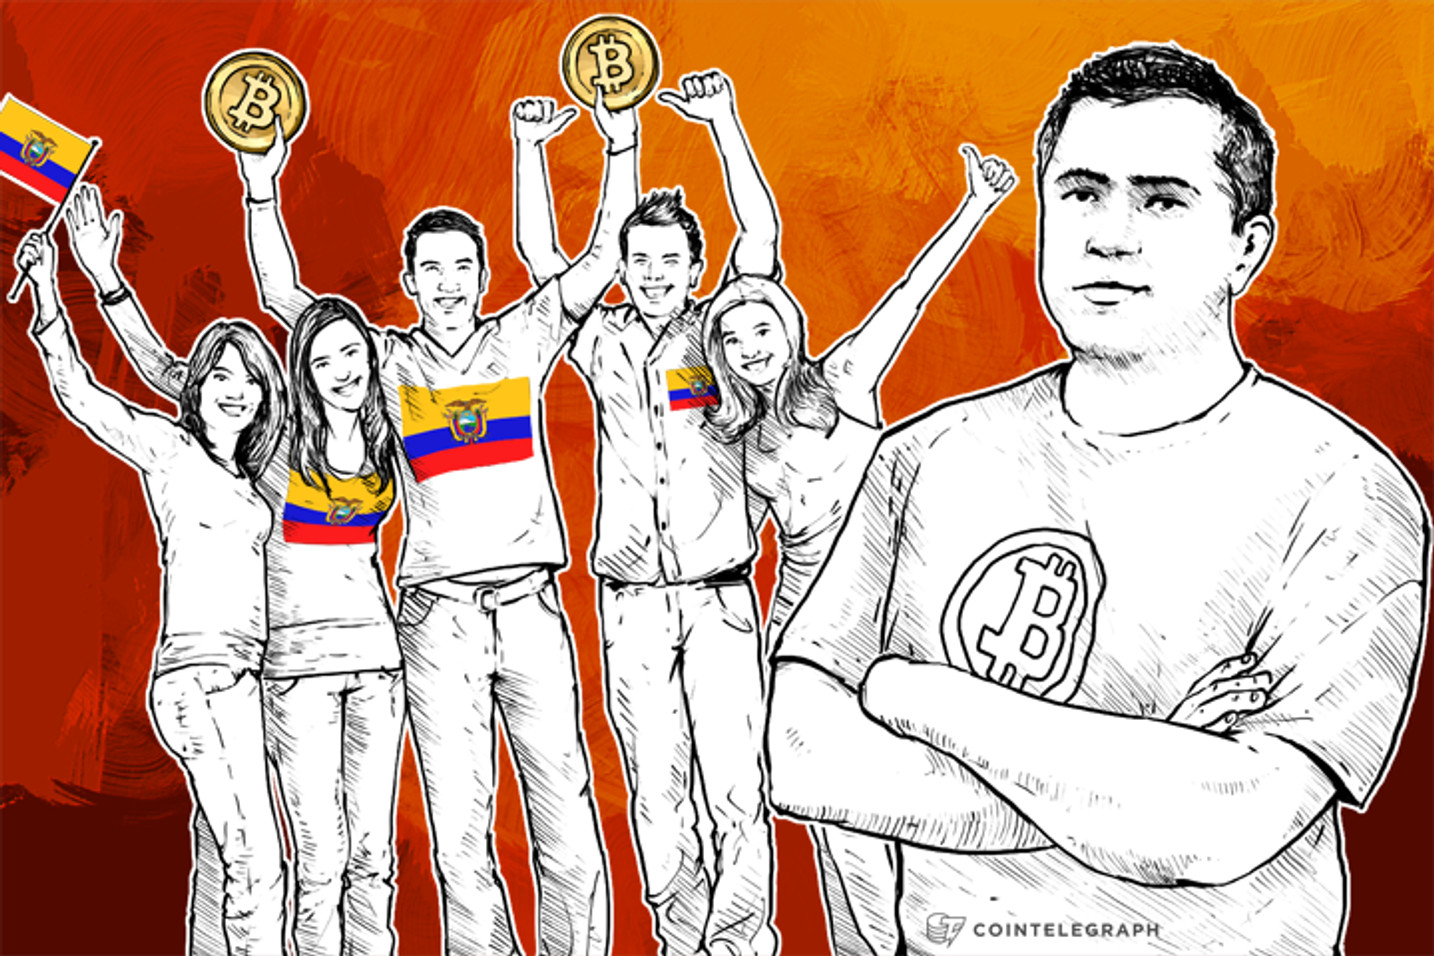 Ecuador's National Digital Currency Experiment Explained